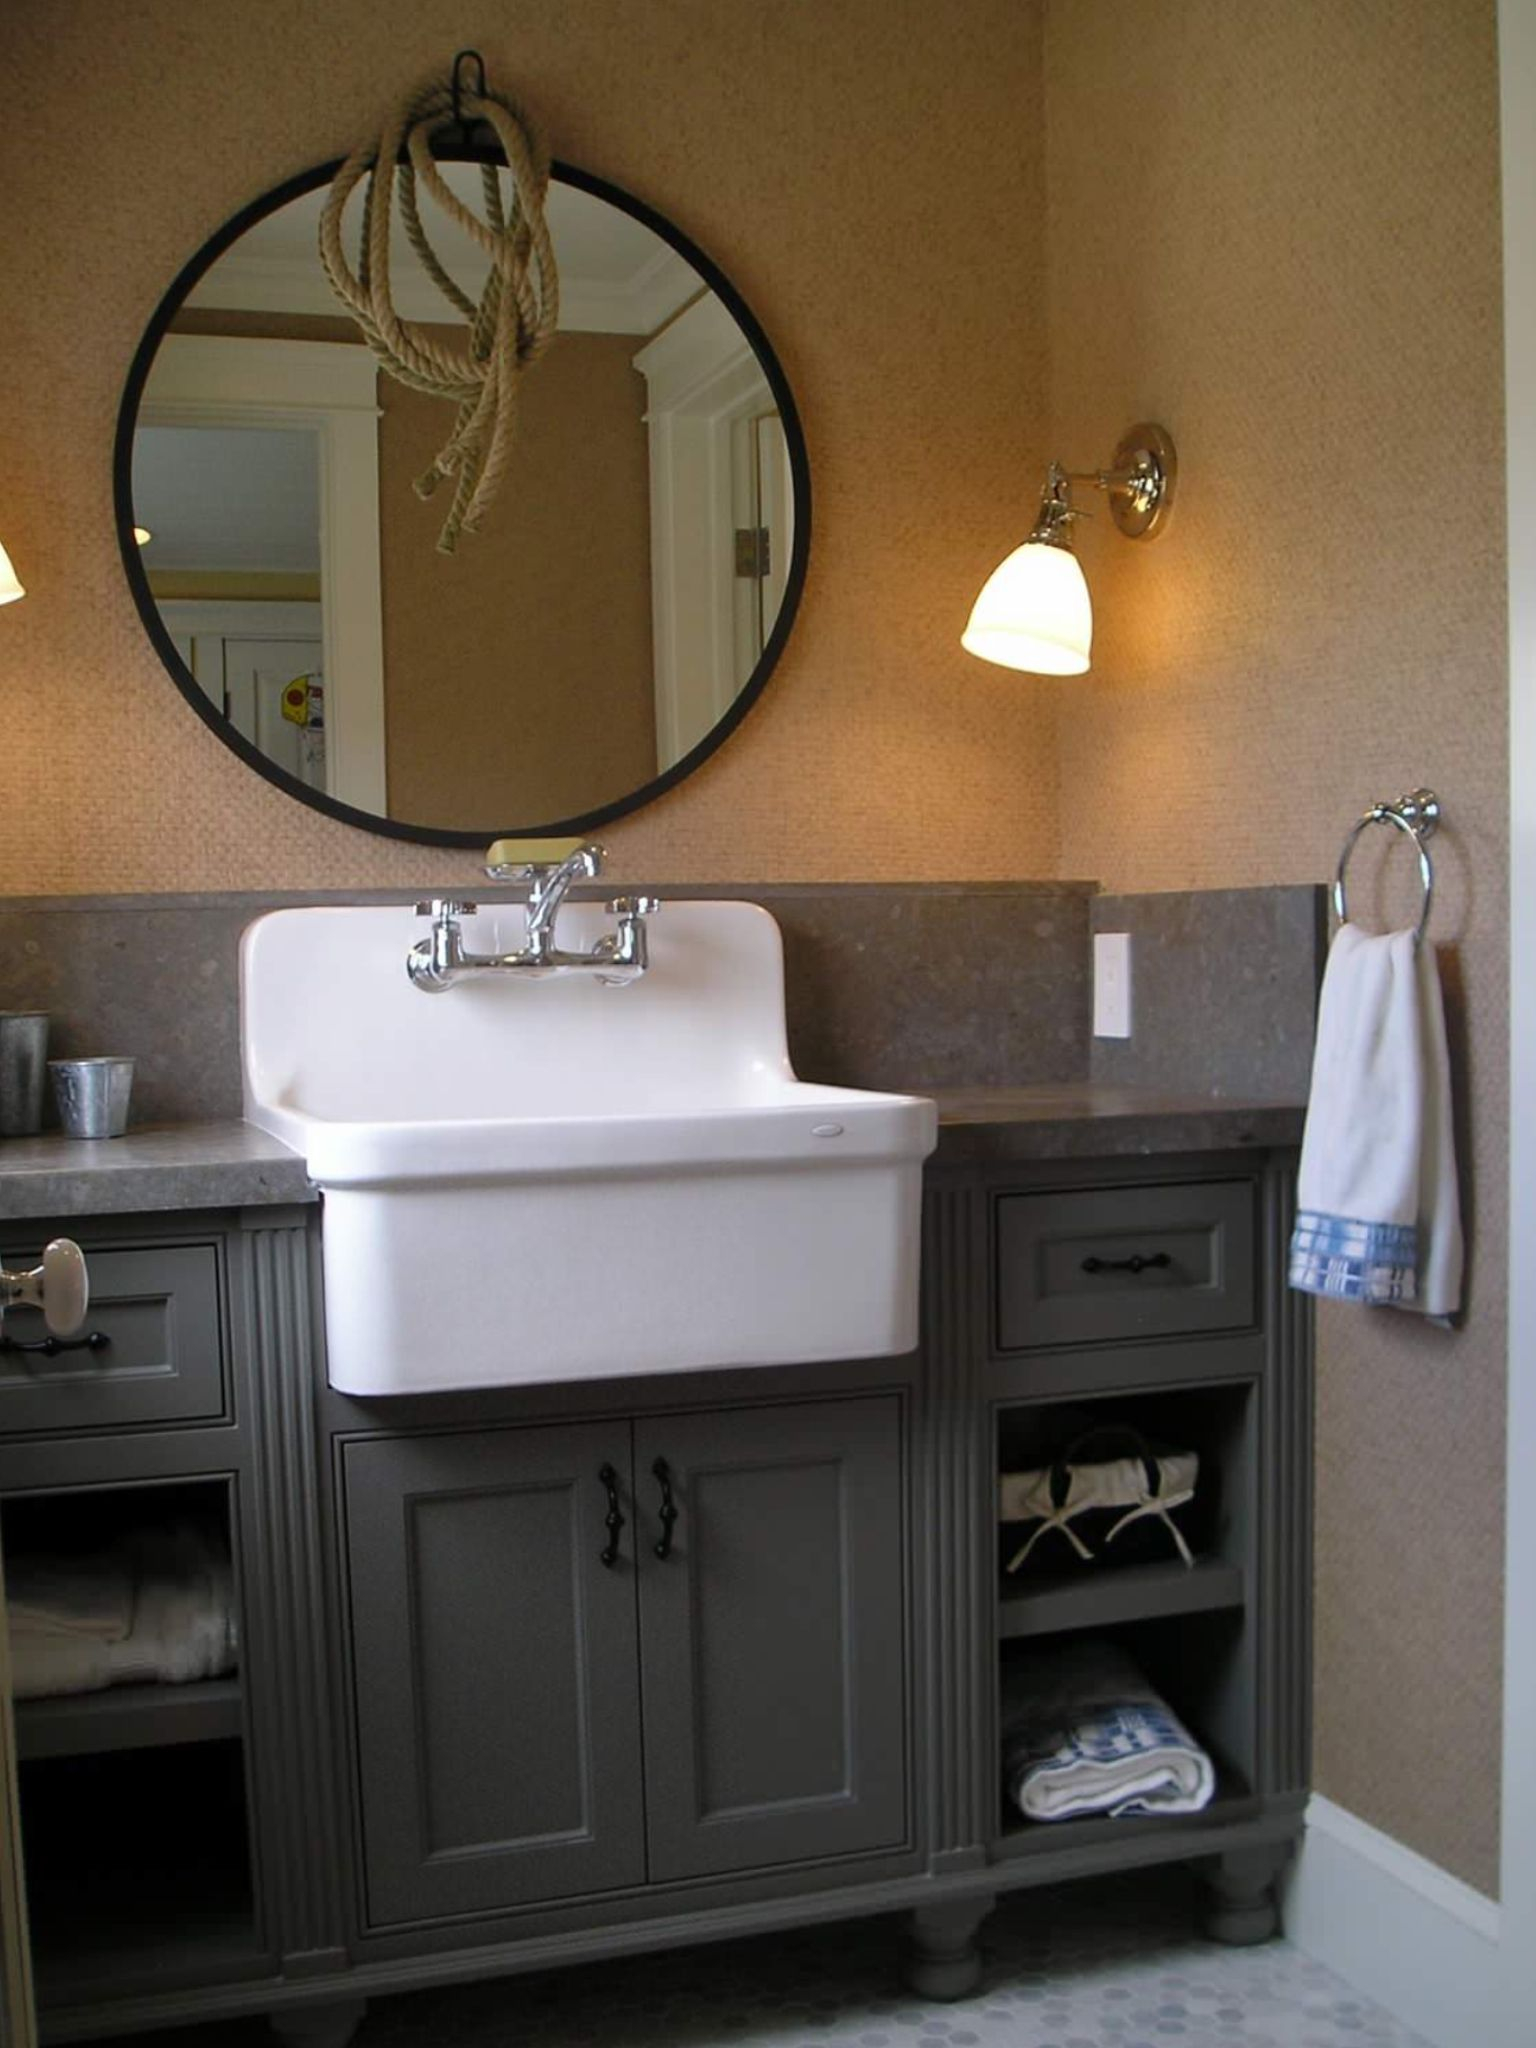 Epic Home Design : Farmhouse Sink Bathroom Vanity Also Stunning Farmhouse throughout New Farmhouse Sink In Bathroom